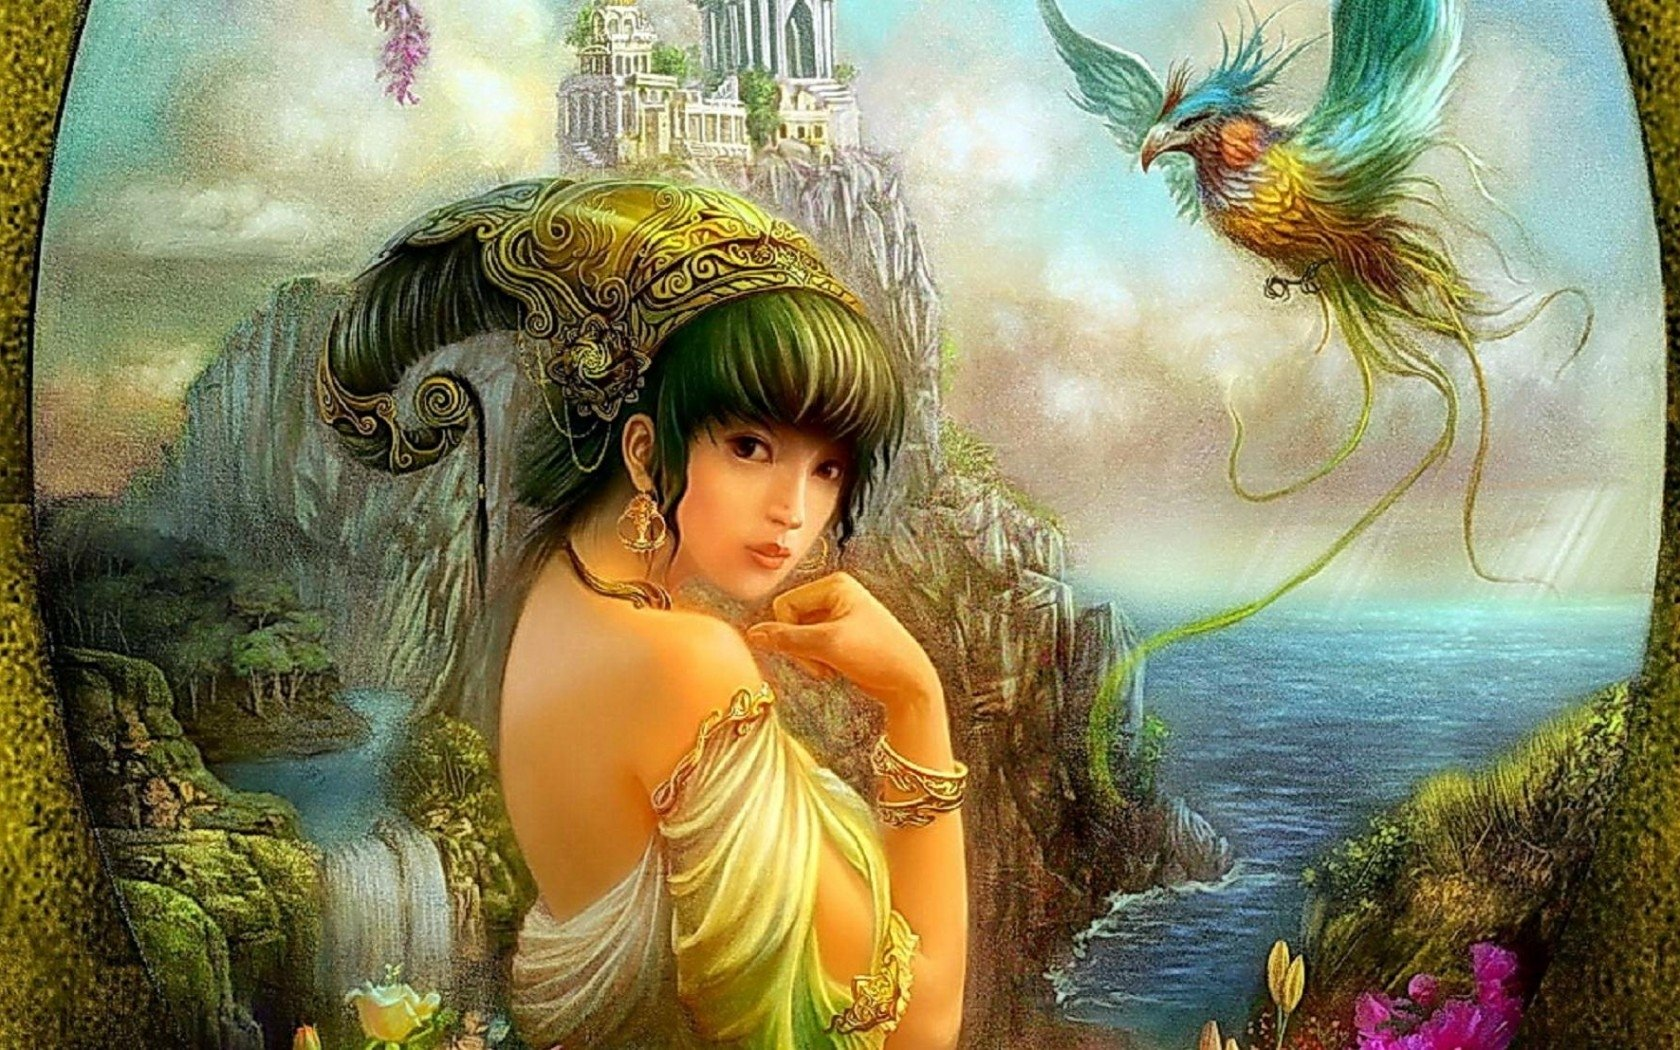 Beautiful Chinese Girl Paintings Widescreen Wallpaper Princess Of The Forgotten City Wallpaper And Background